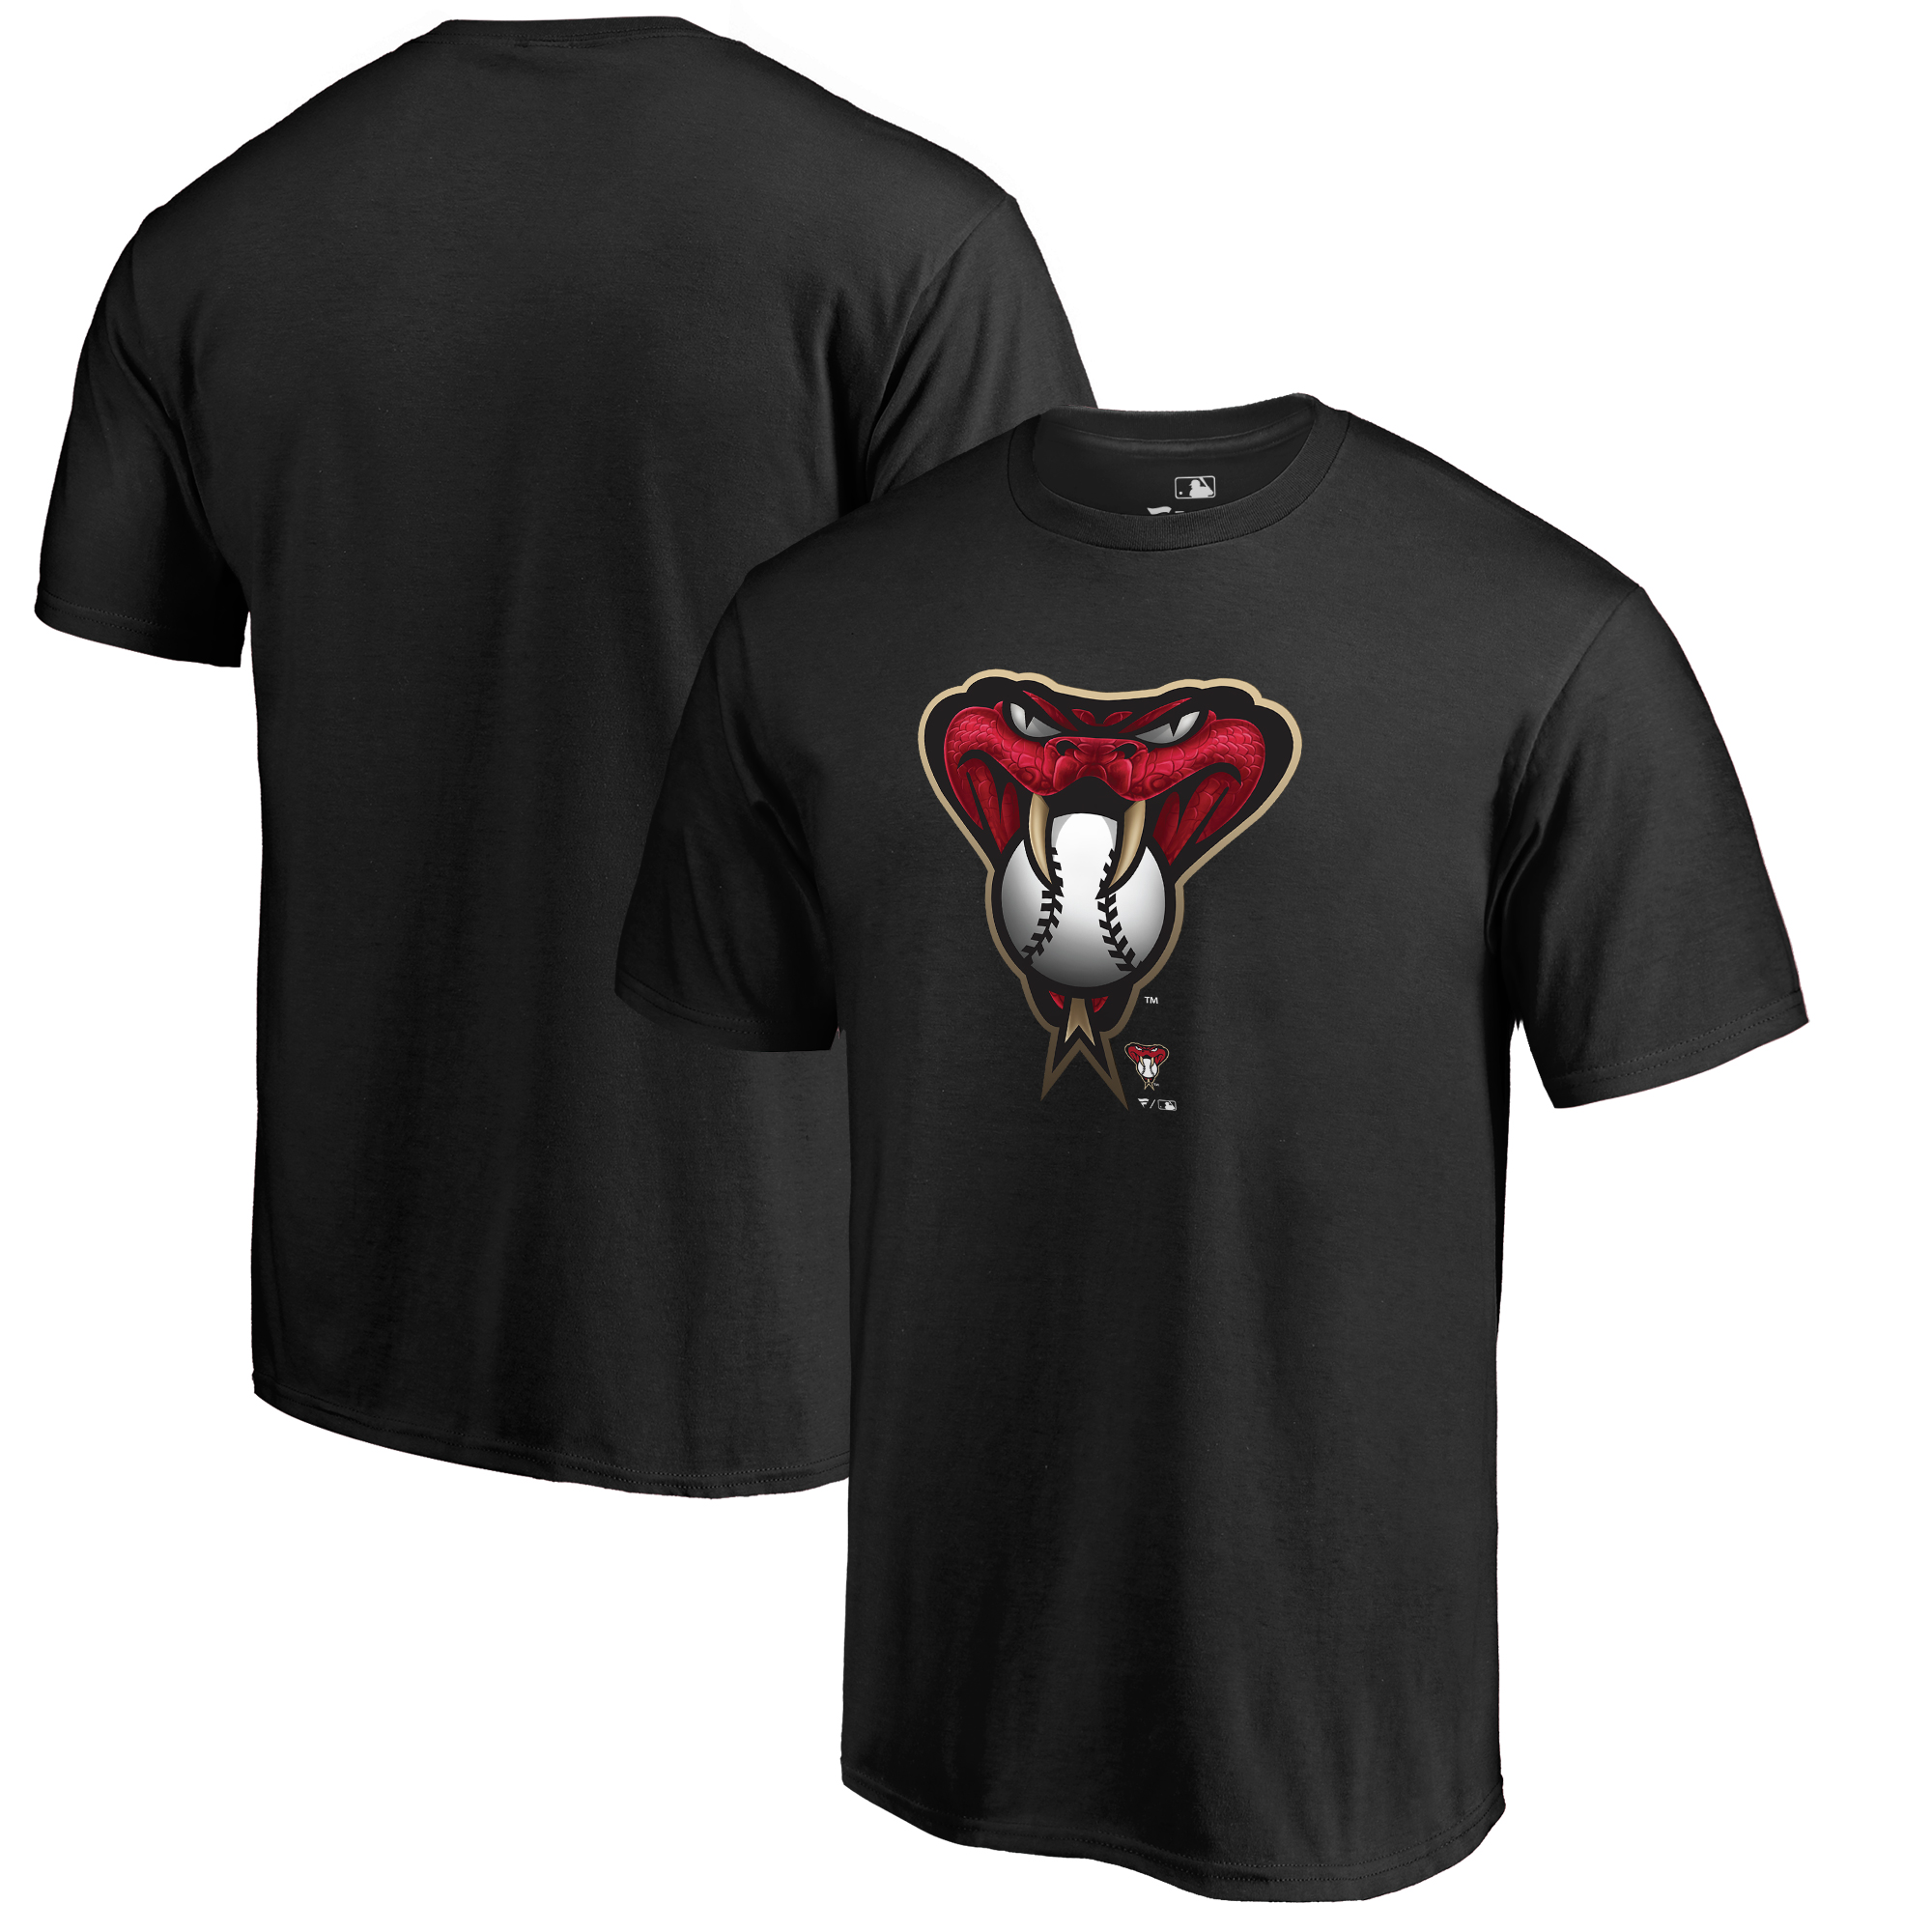 Arizona Diamondbacks Fanatics Branded Midnight Mascot T-Shirt - Black